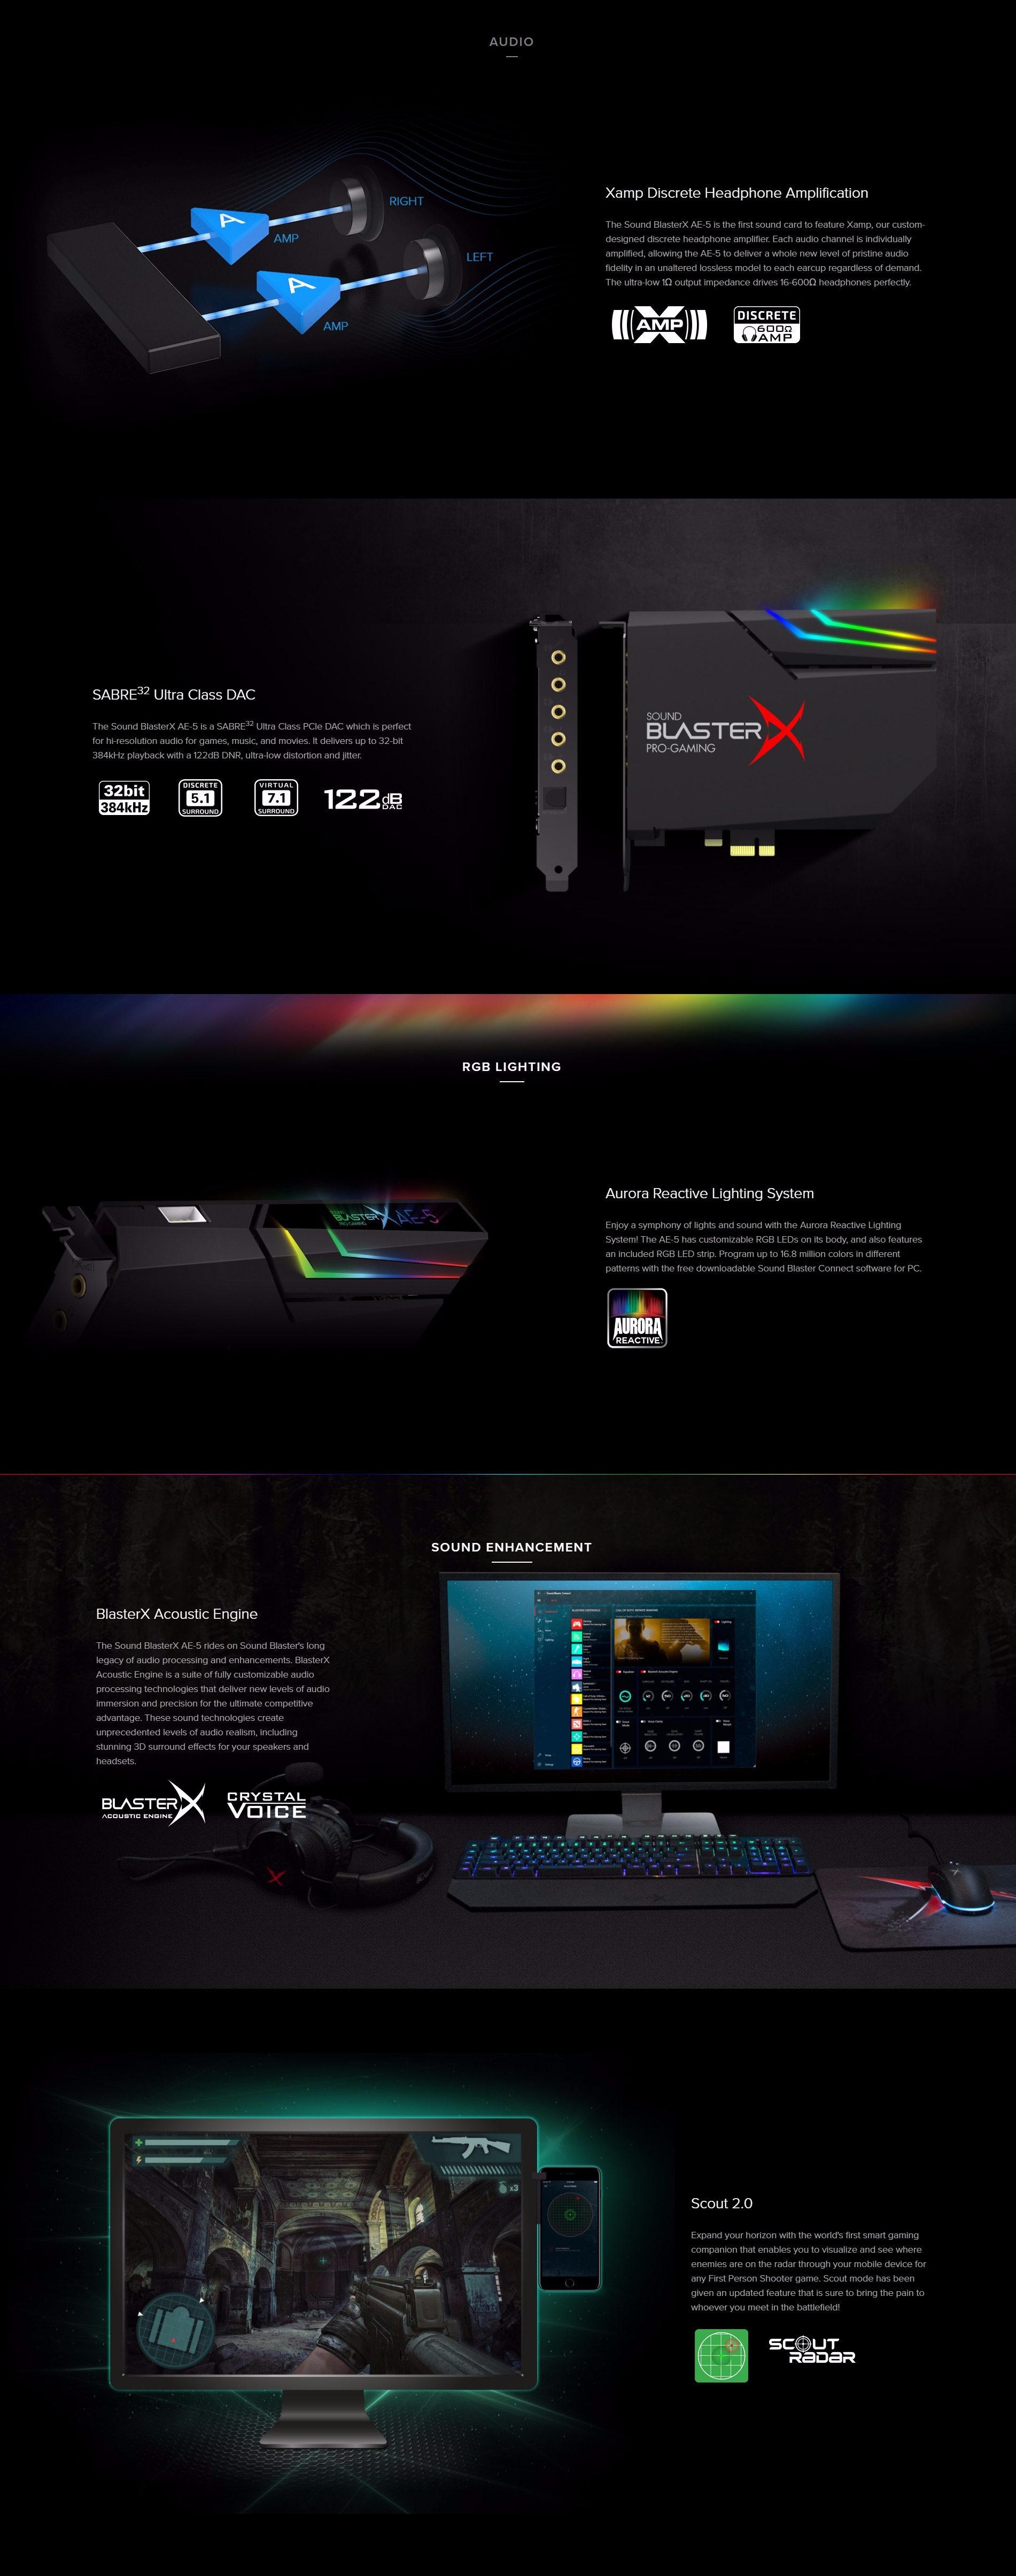 A large marketing image providing additional information about the product Creative Sound BlasterX AE-5 Hi-Res 5.1 Gaming Sound Card  - Additional alt info not provided